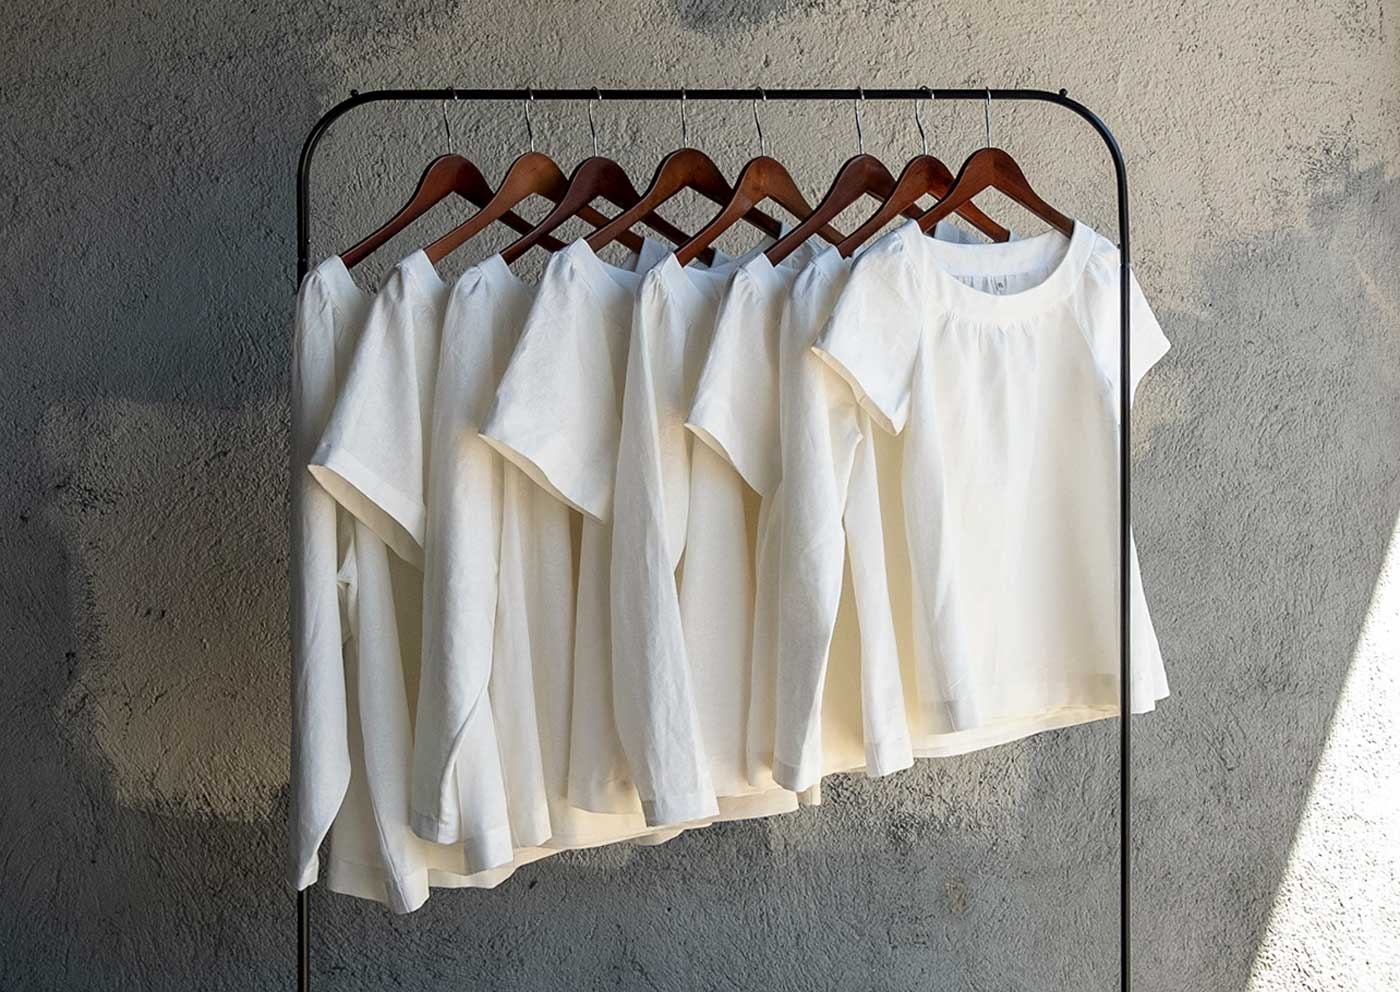 Eight solid white linen Cordyline tops in a range of sizes hanging on a rack.